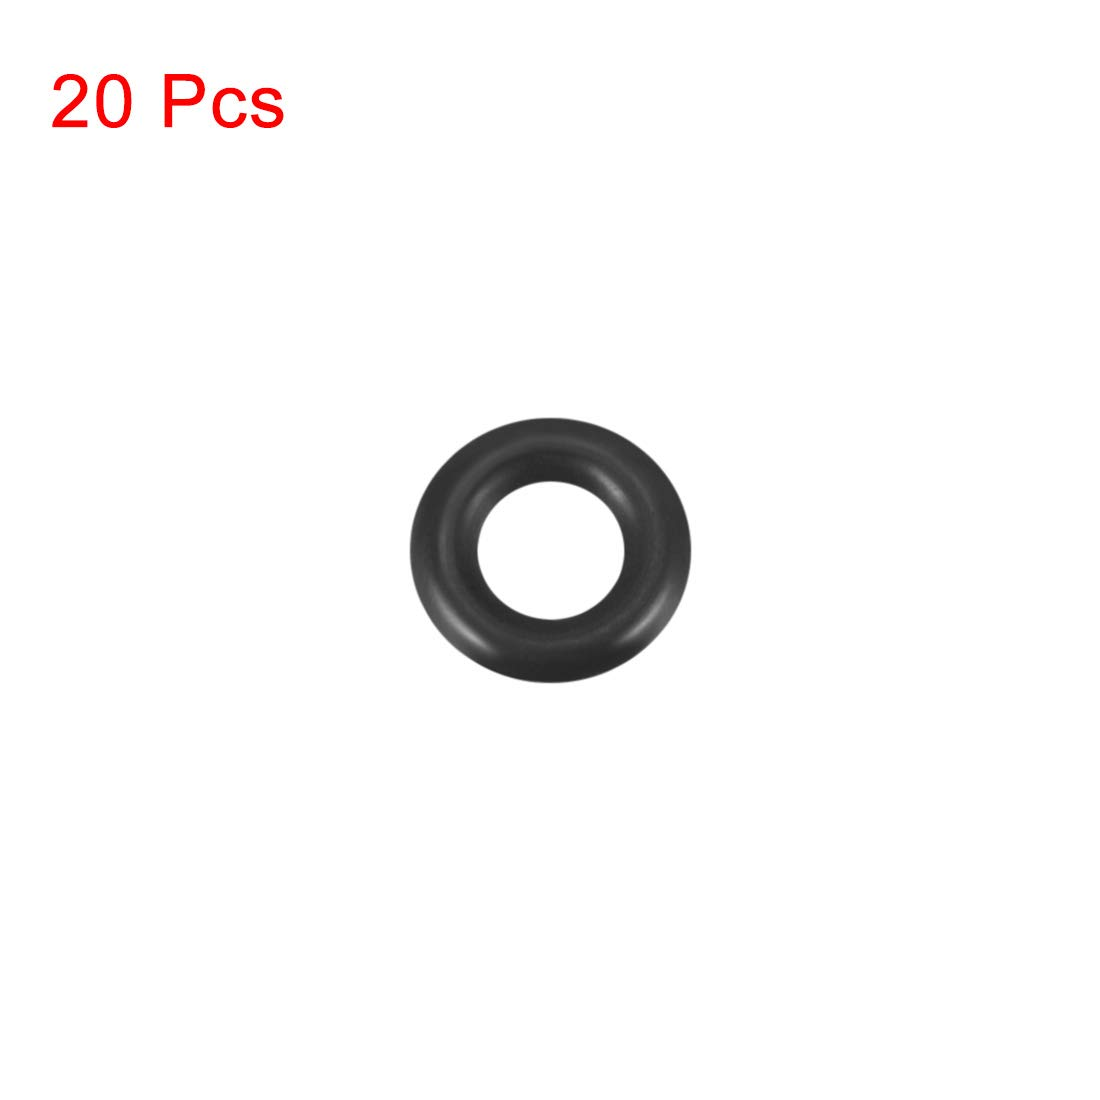 Round Seal Gasket 13mm OD Pack of 12 9mm Inner Diameter 2mm Width uxcell O-Rings Nitrile Rubber